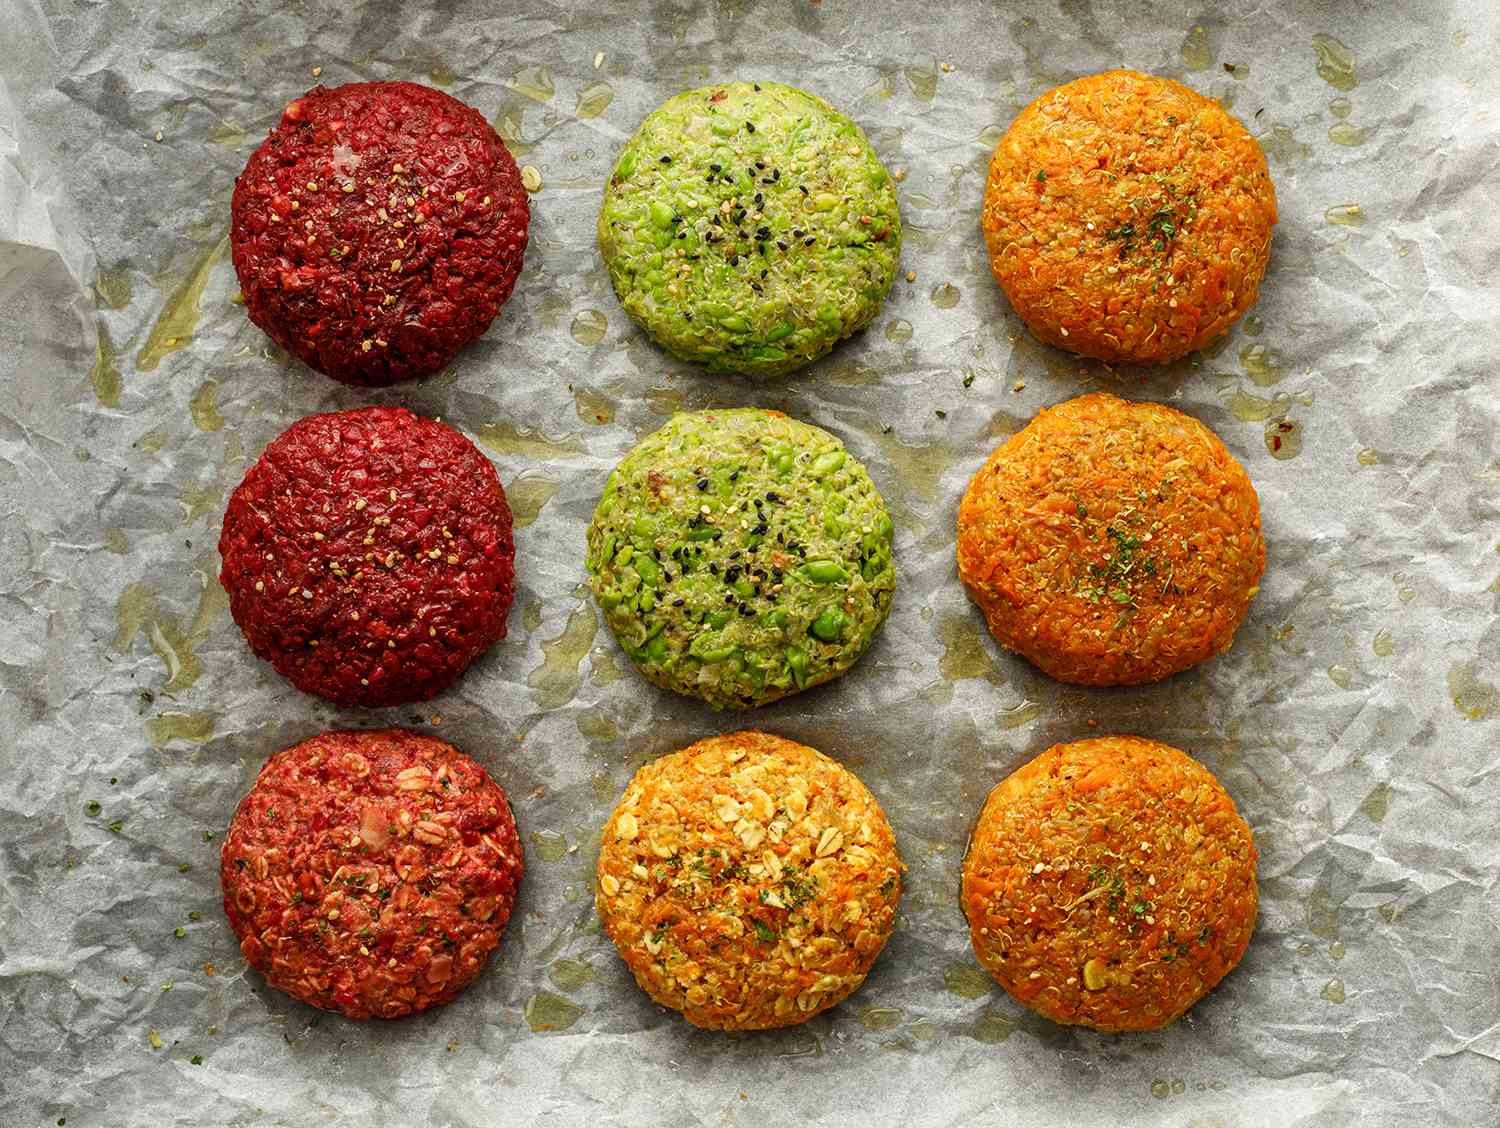 Raw vegan burgers made of beetroot, green peas, carrots, groats and herbs on white parchment prepared for baking